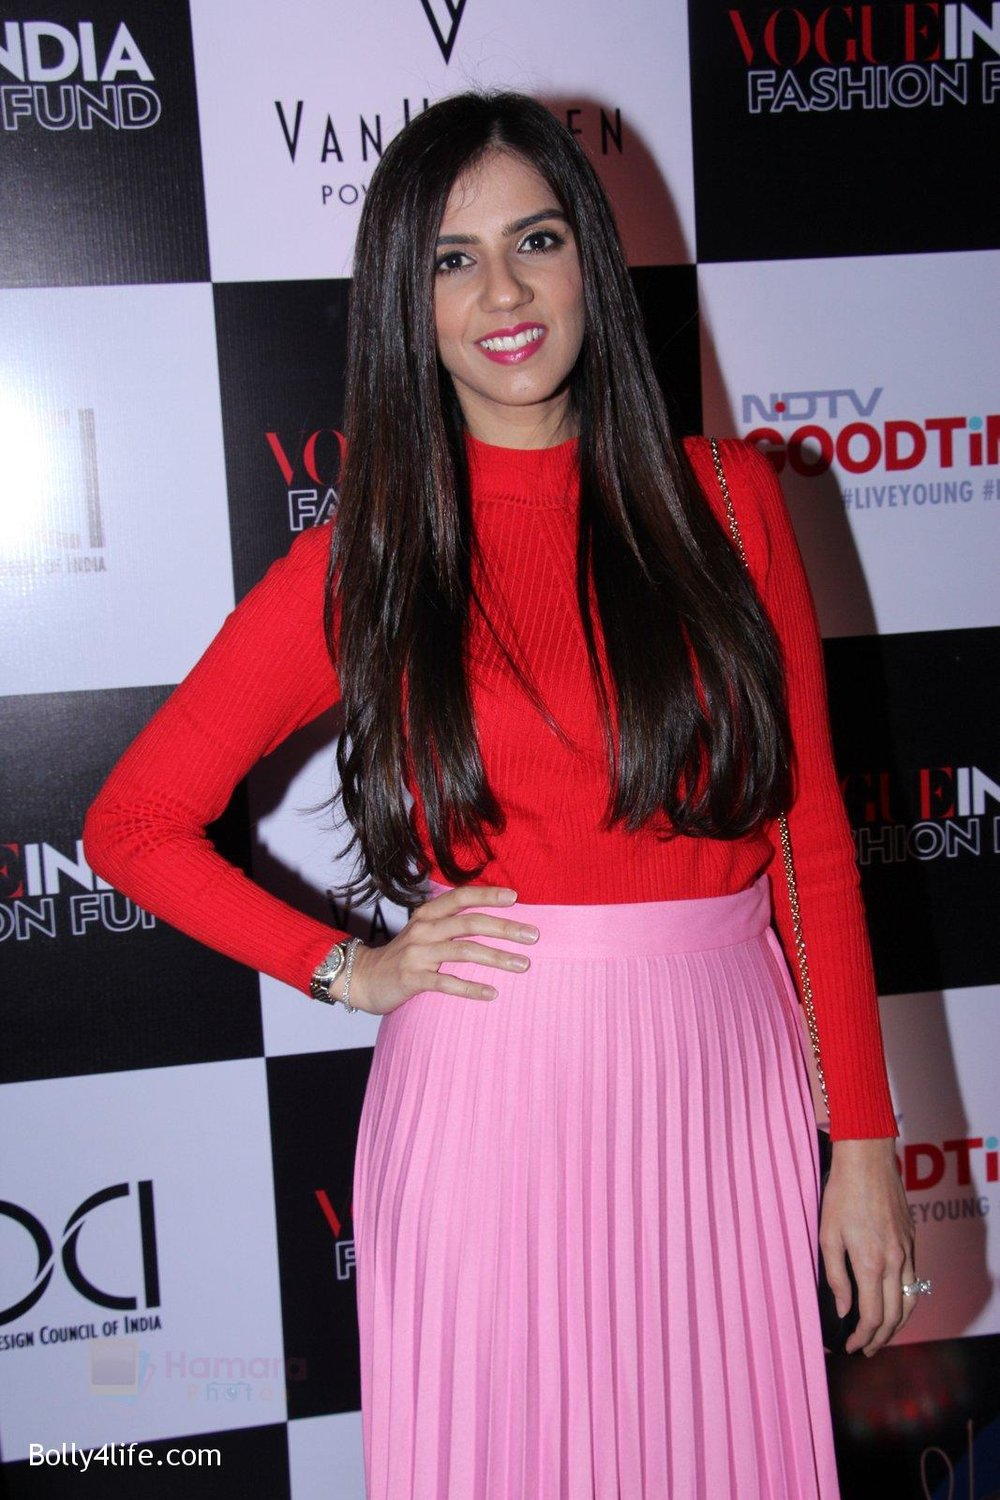 Nishka-Lulla-at-Vogue-India-Fashion-Fund-Event-2.jpg